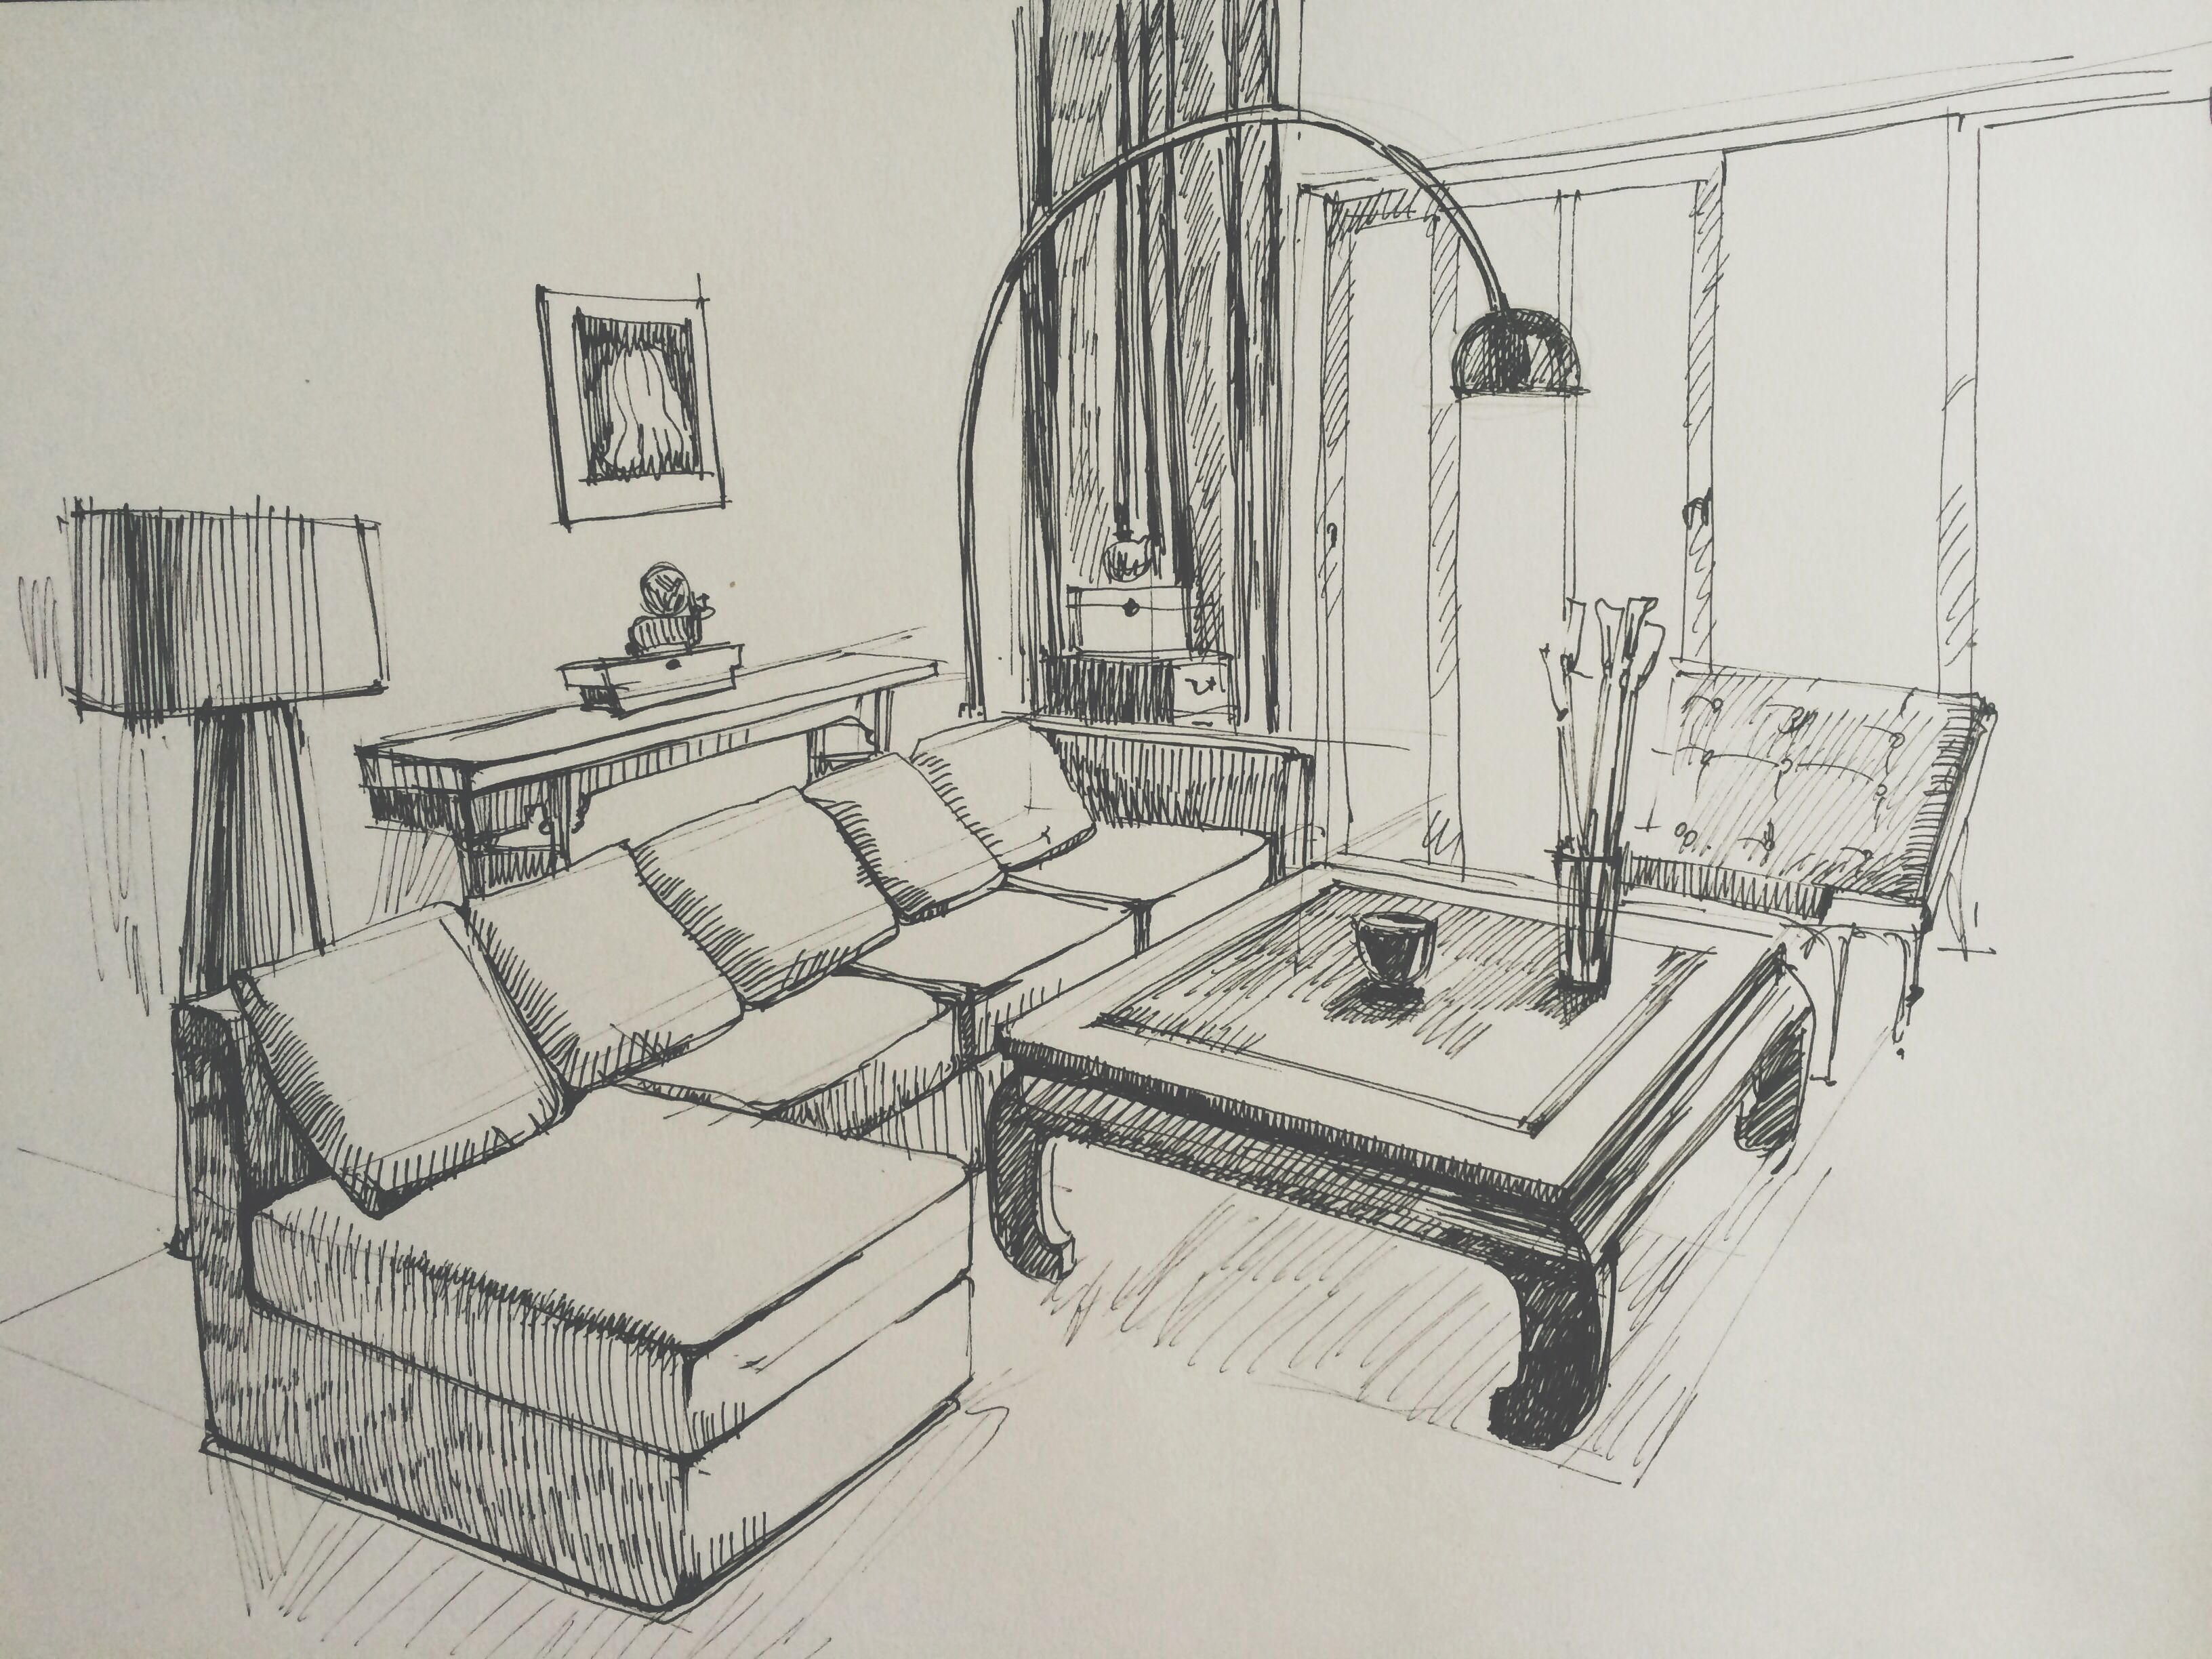 The Line Art And Living : Living room sketch interior sketches